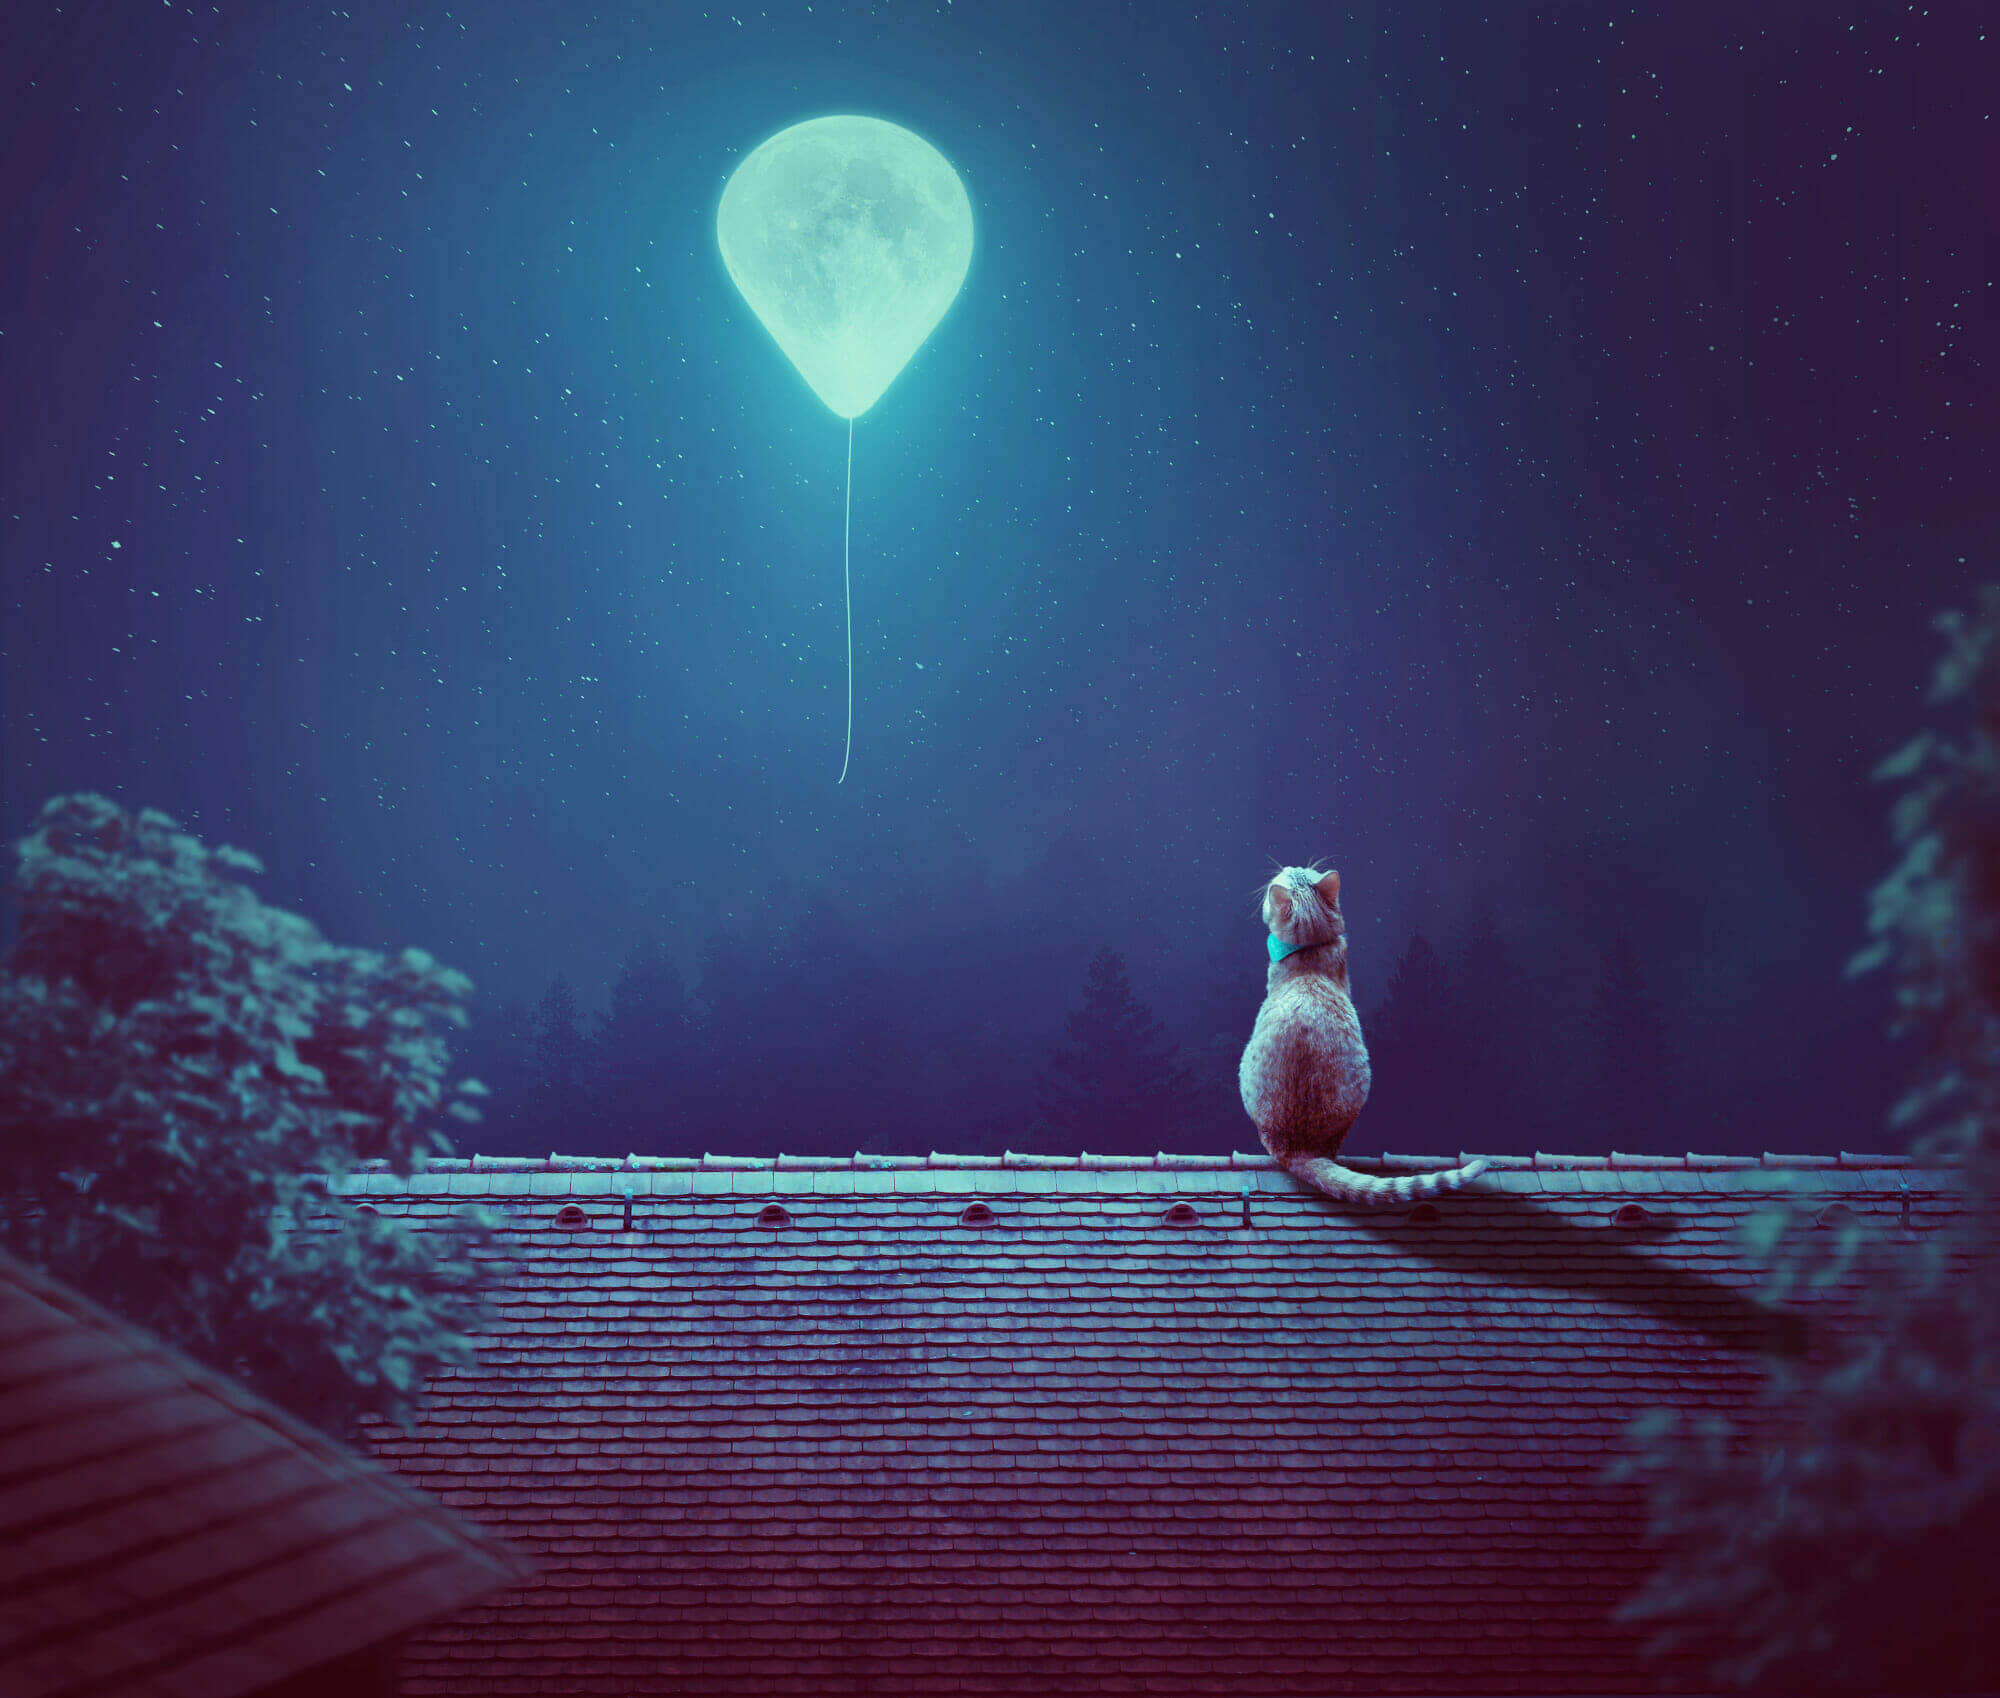 How to Create a Moon Balloon Scene Photo Manipulation With Adobe Photoshop